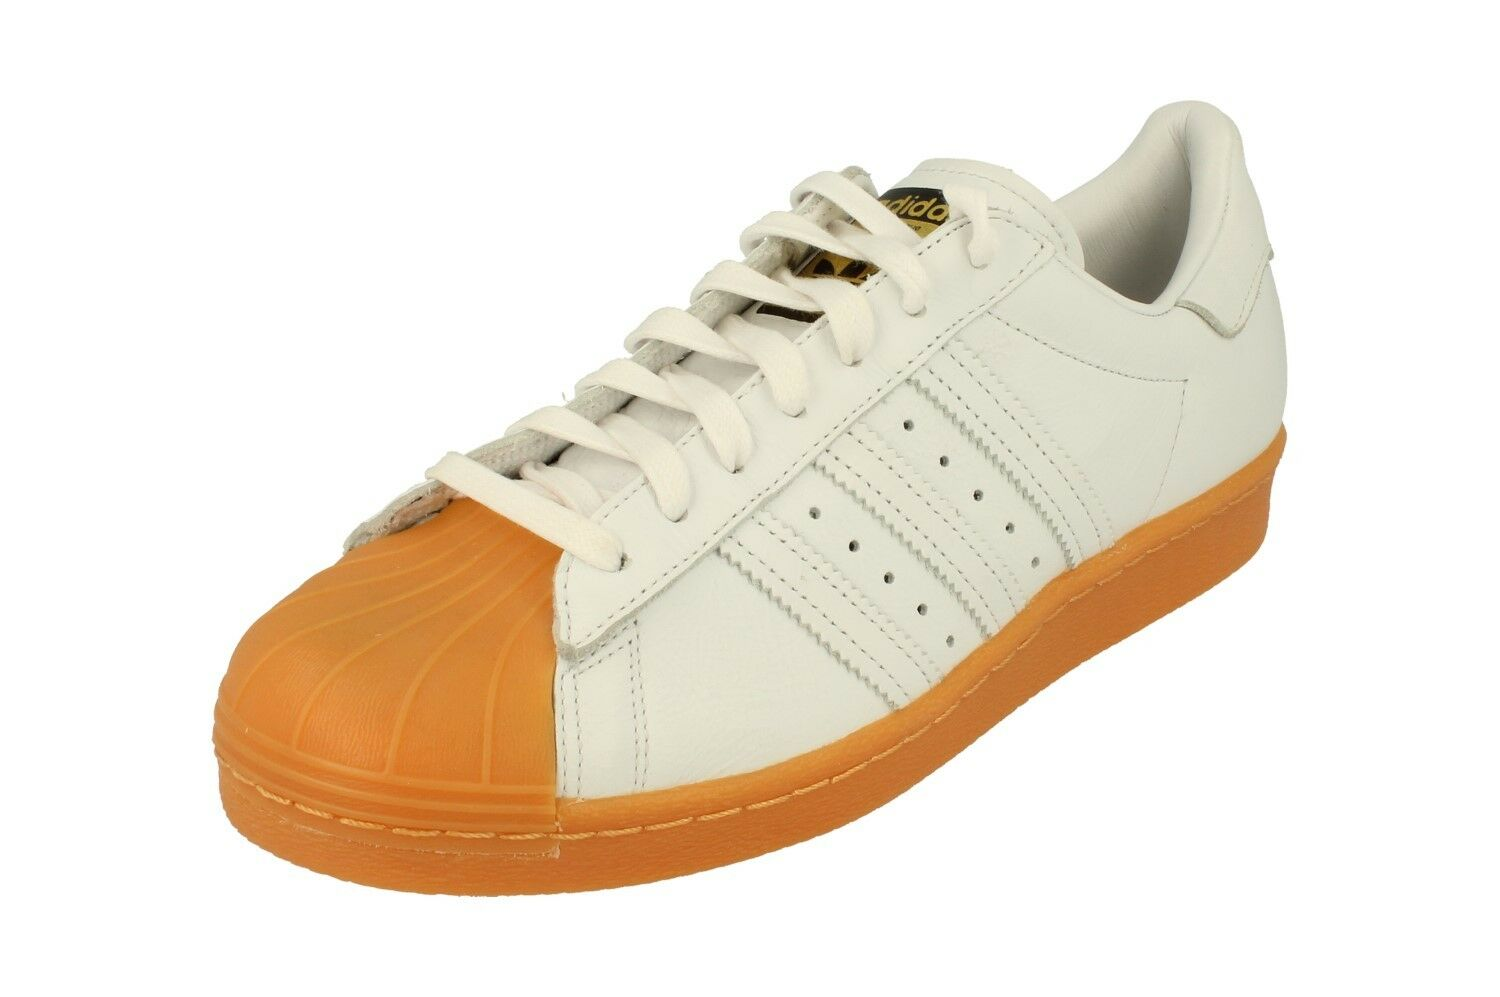 Adidas Originals Mens Superstar 80S Dlx Mens Originals Trainers Sneakers S75830 261f4e